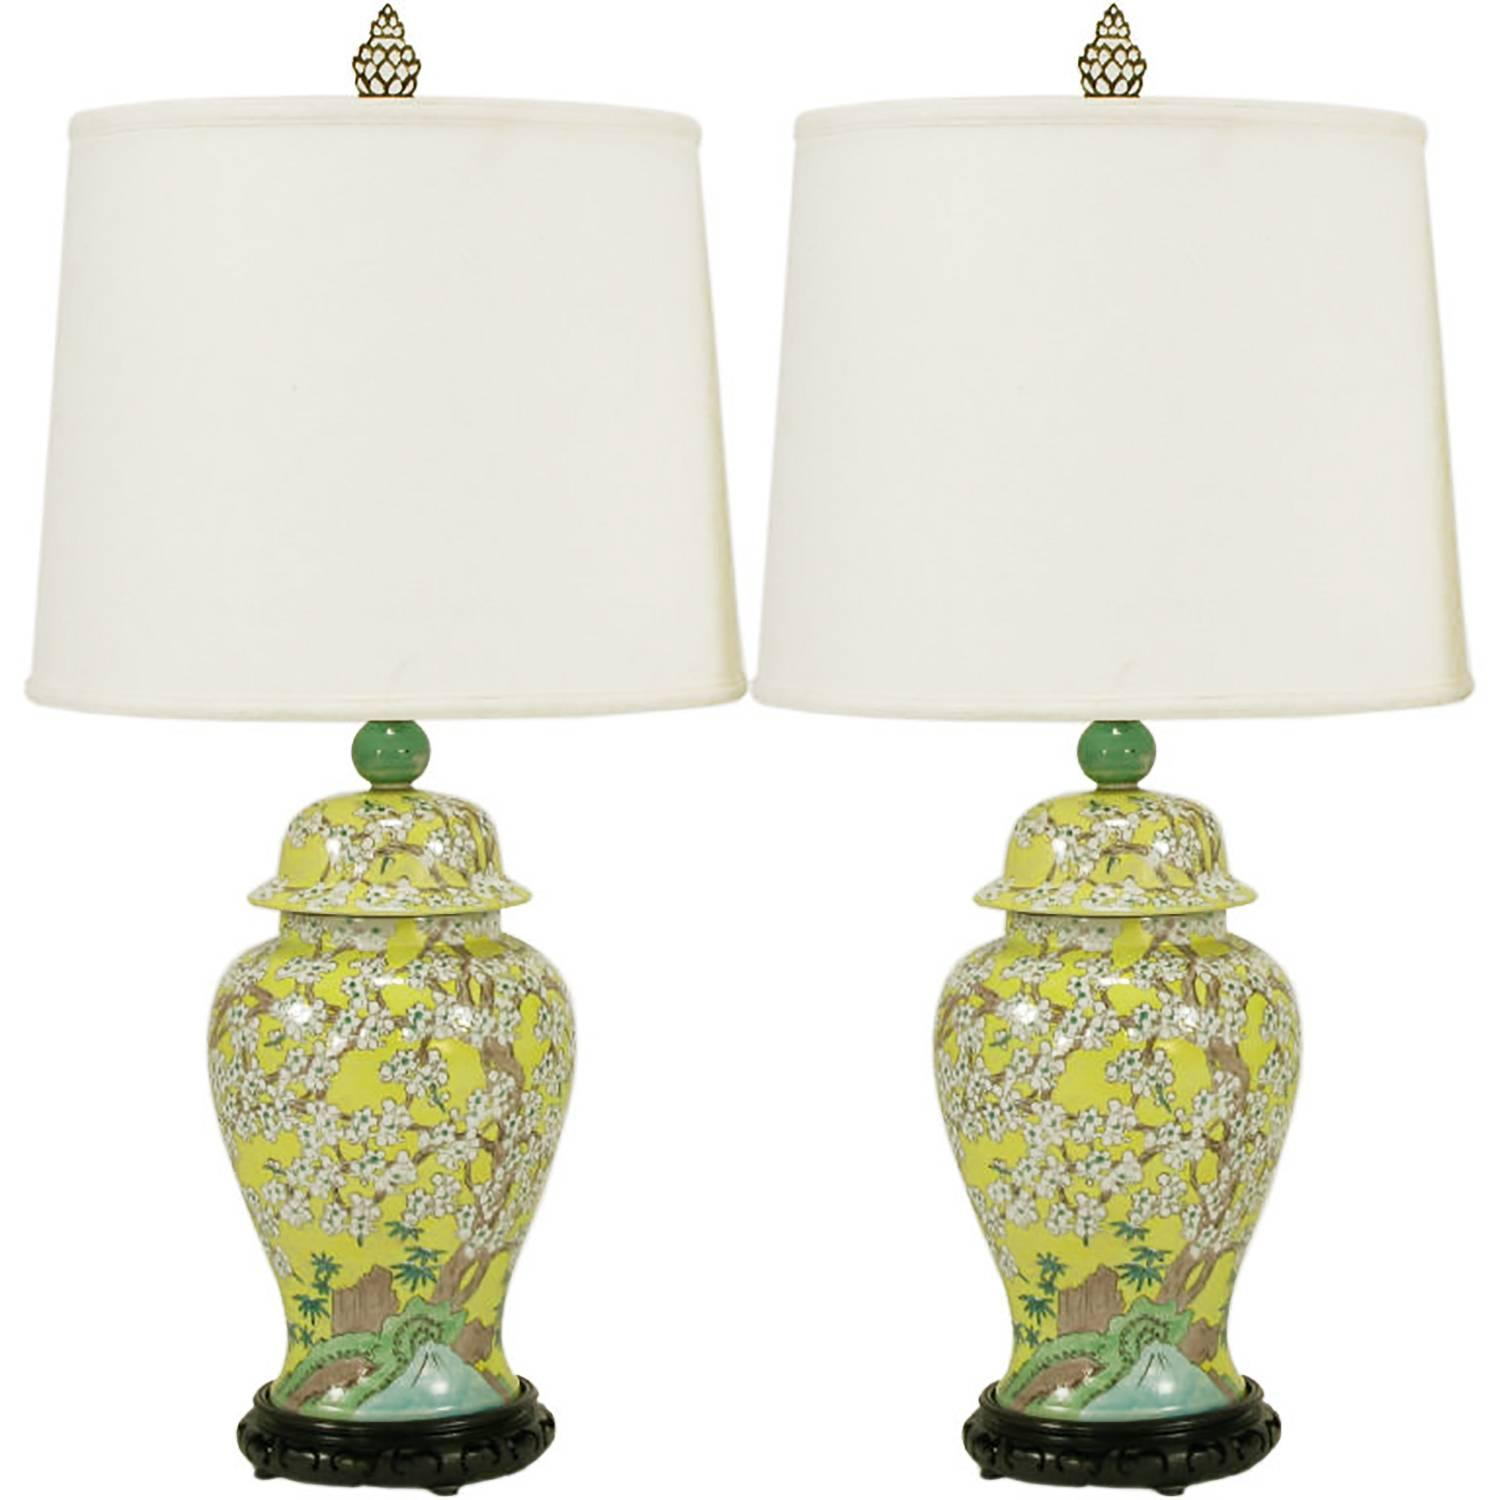 Pair of imported hand painted yellow glaze ginger jar table lamps pair of imported hand painted yellow glaze ginger jar table lamps for sale at 1stdibs geotapseo Gallery